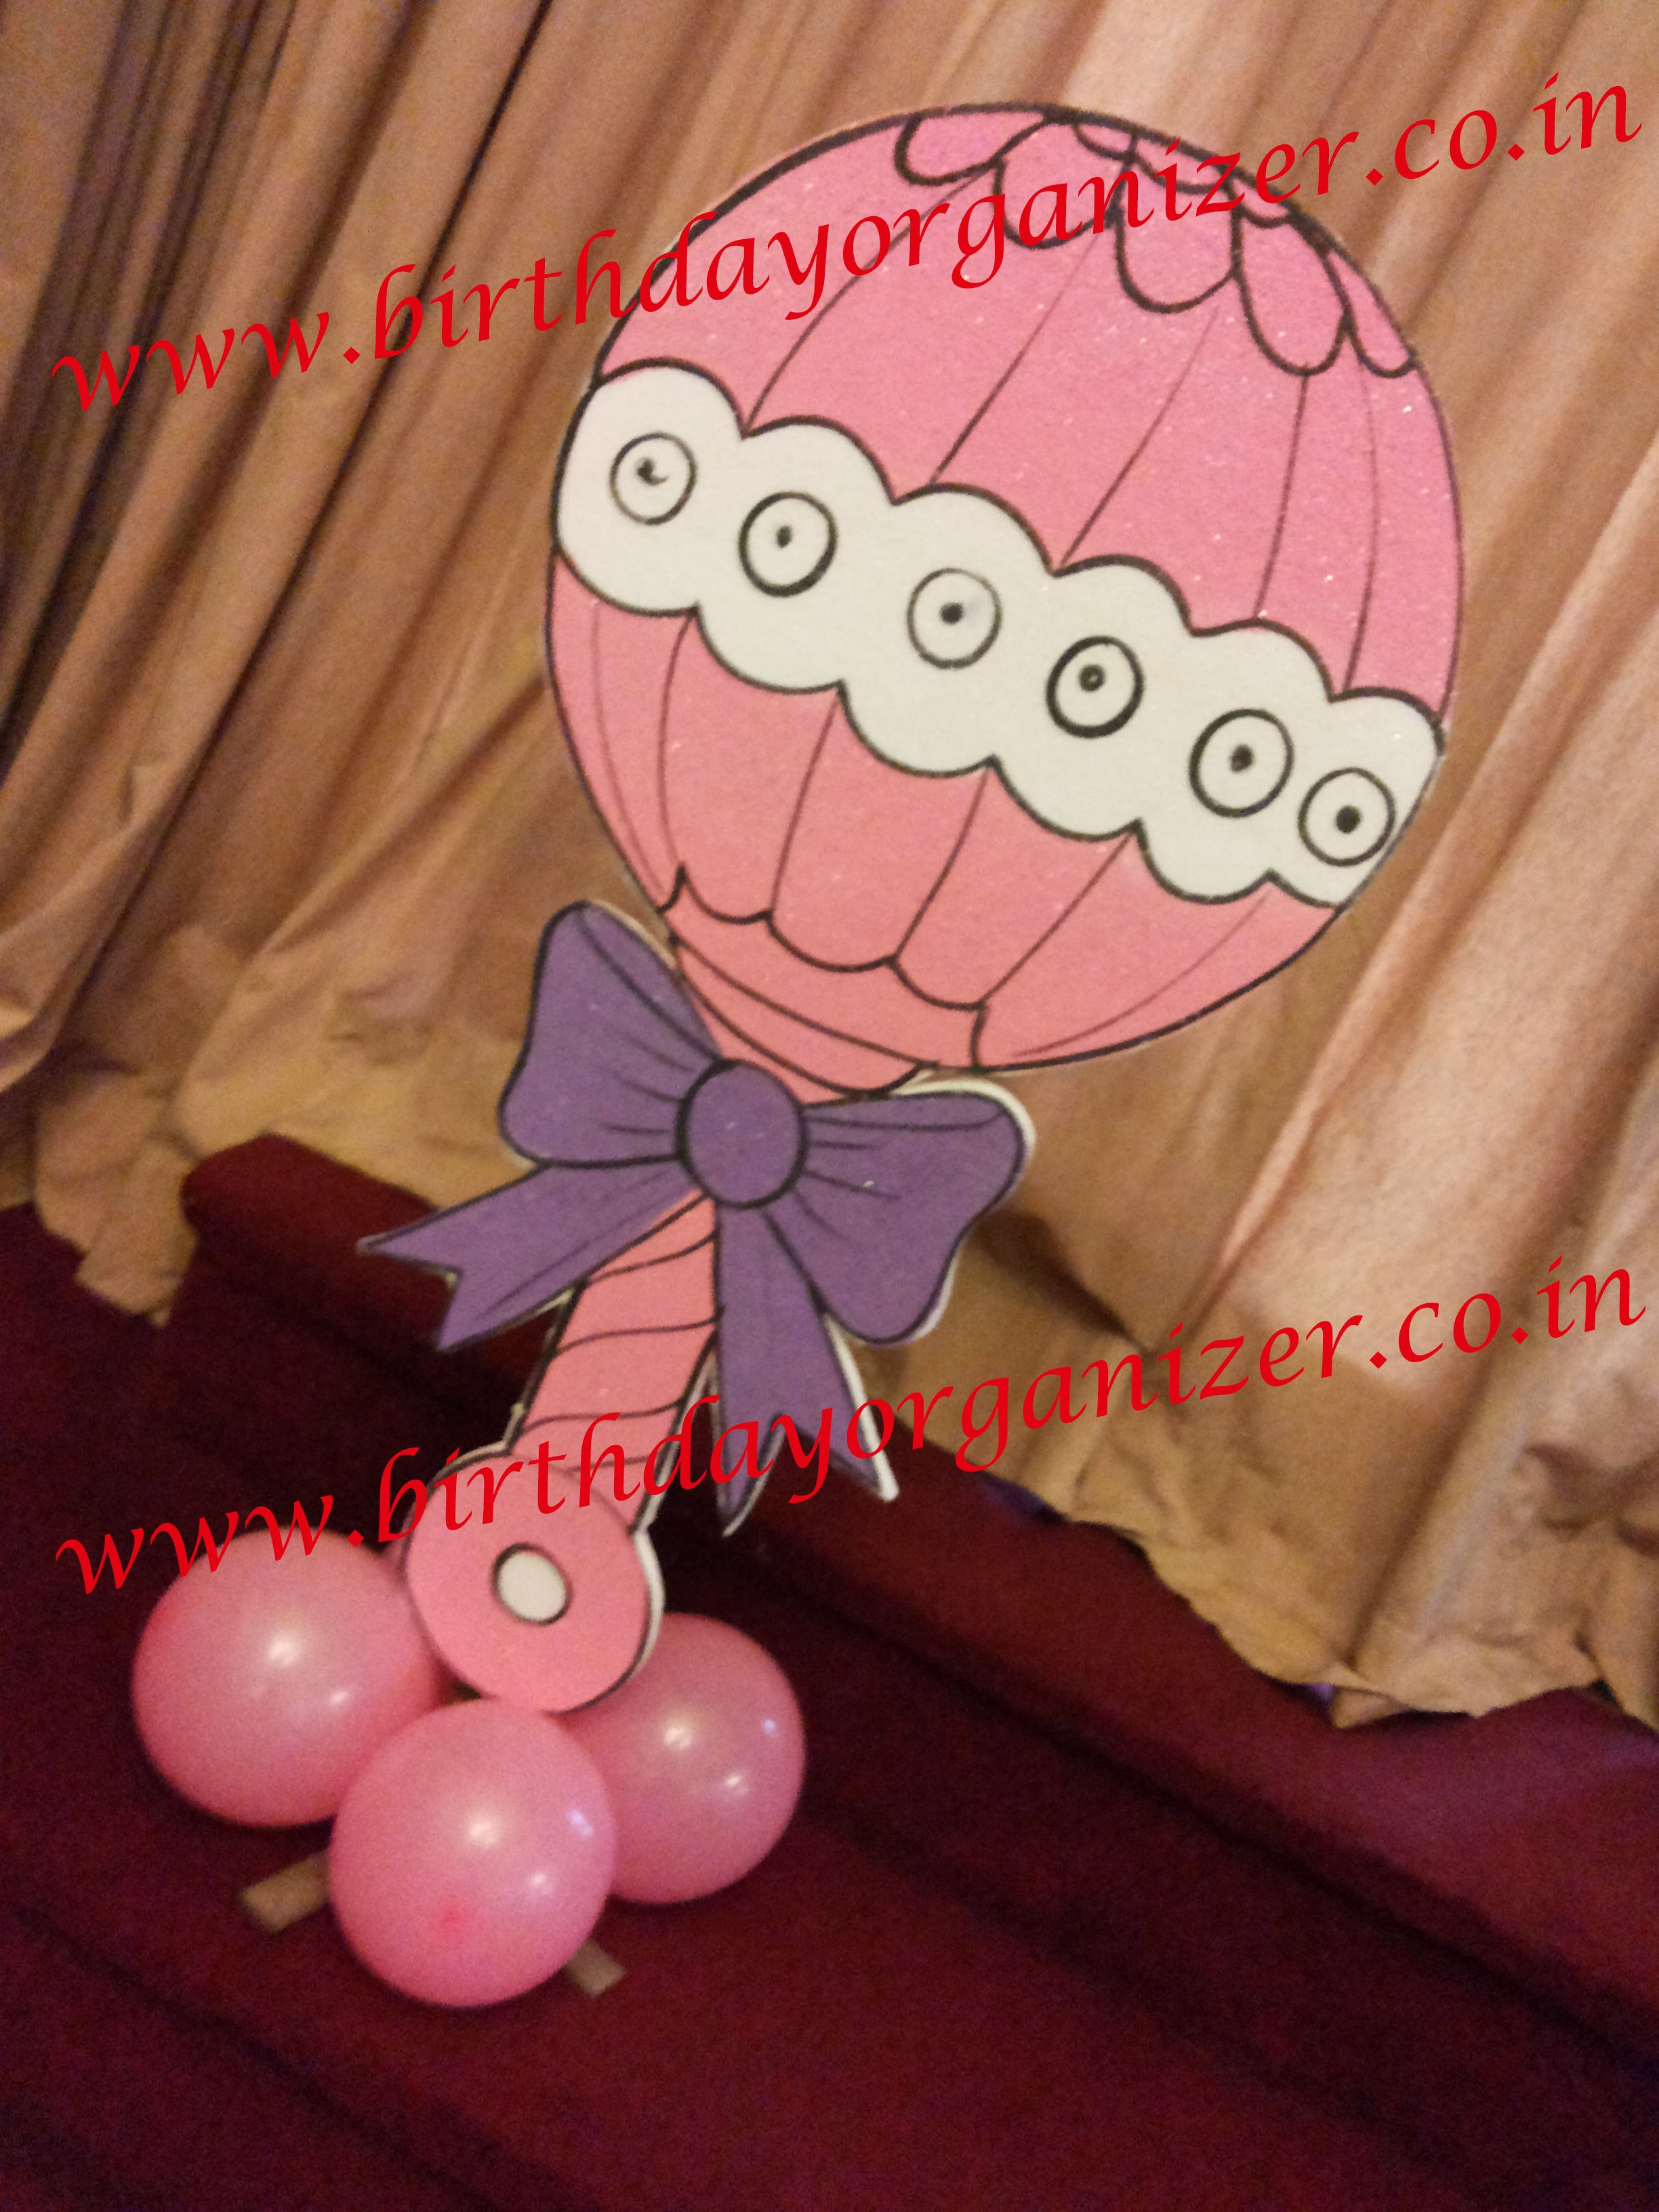 Baby shower balloon decoration in noida delhi ncr, Baby shower balloon decoration gurgaon, Baby shower balloon decoration ideas in noida, Baby shower balloon decoration in delhi